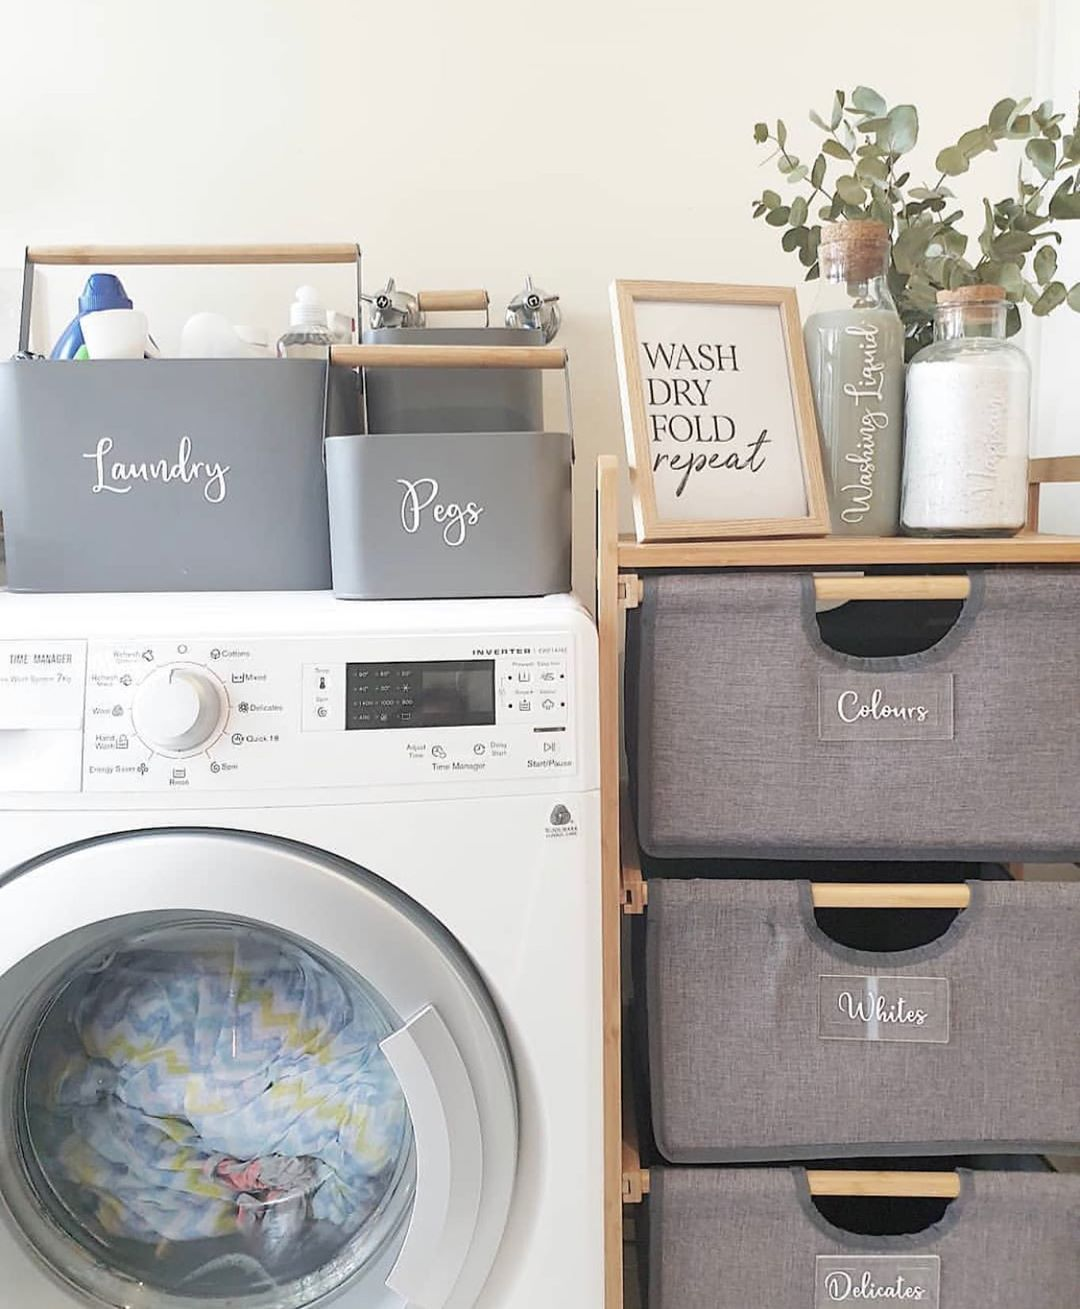 The Realistic Minimalist On Instagram How Creative Is Inspireddecorbytatiana With This Great Washing Basket Hack Def Washing Basket Kmart Hacks Kmart Home